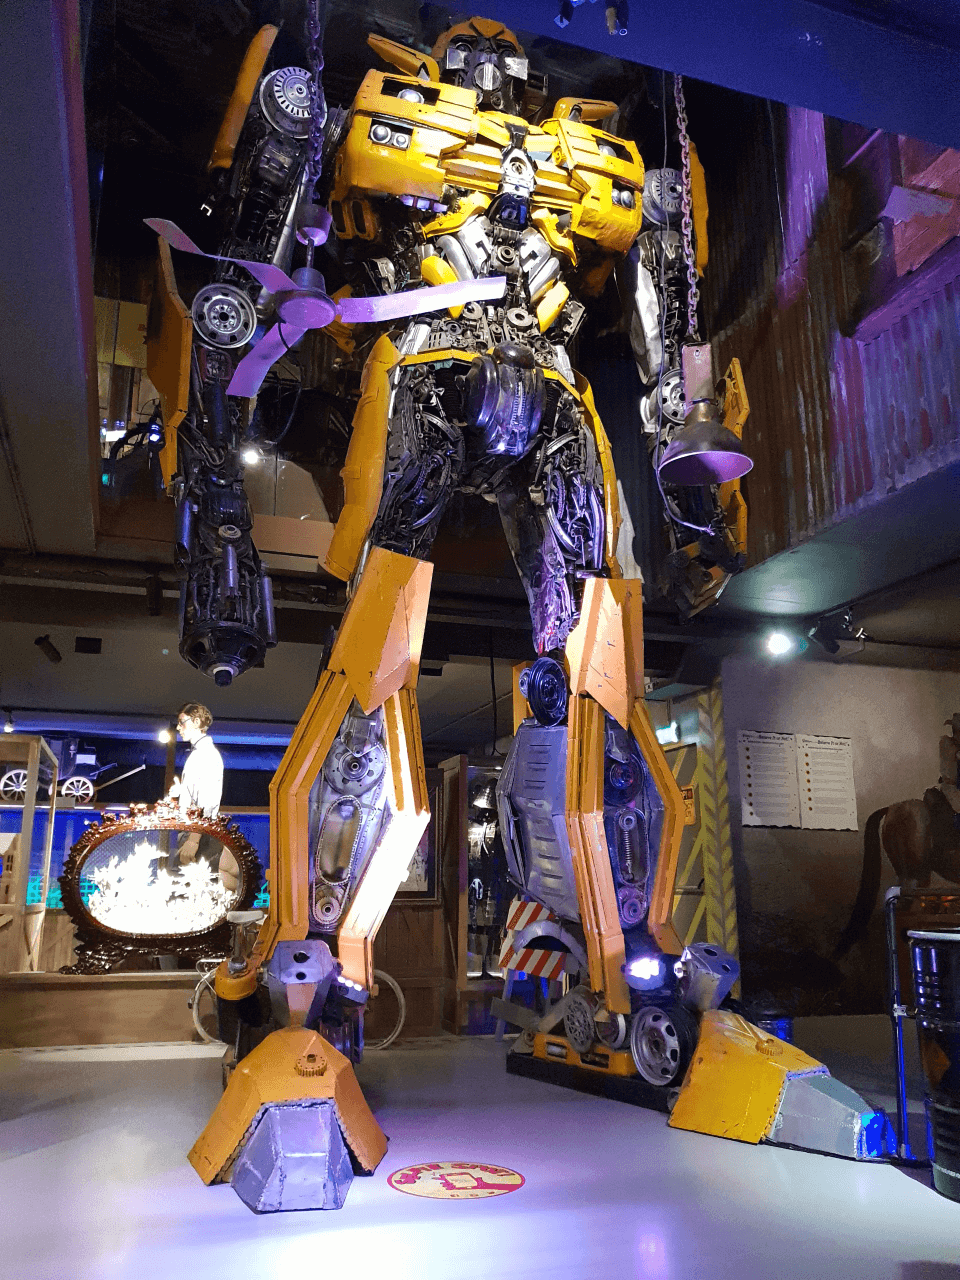 Transformers bij Ripley's Believe It or Not Amsterdam!